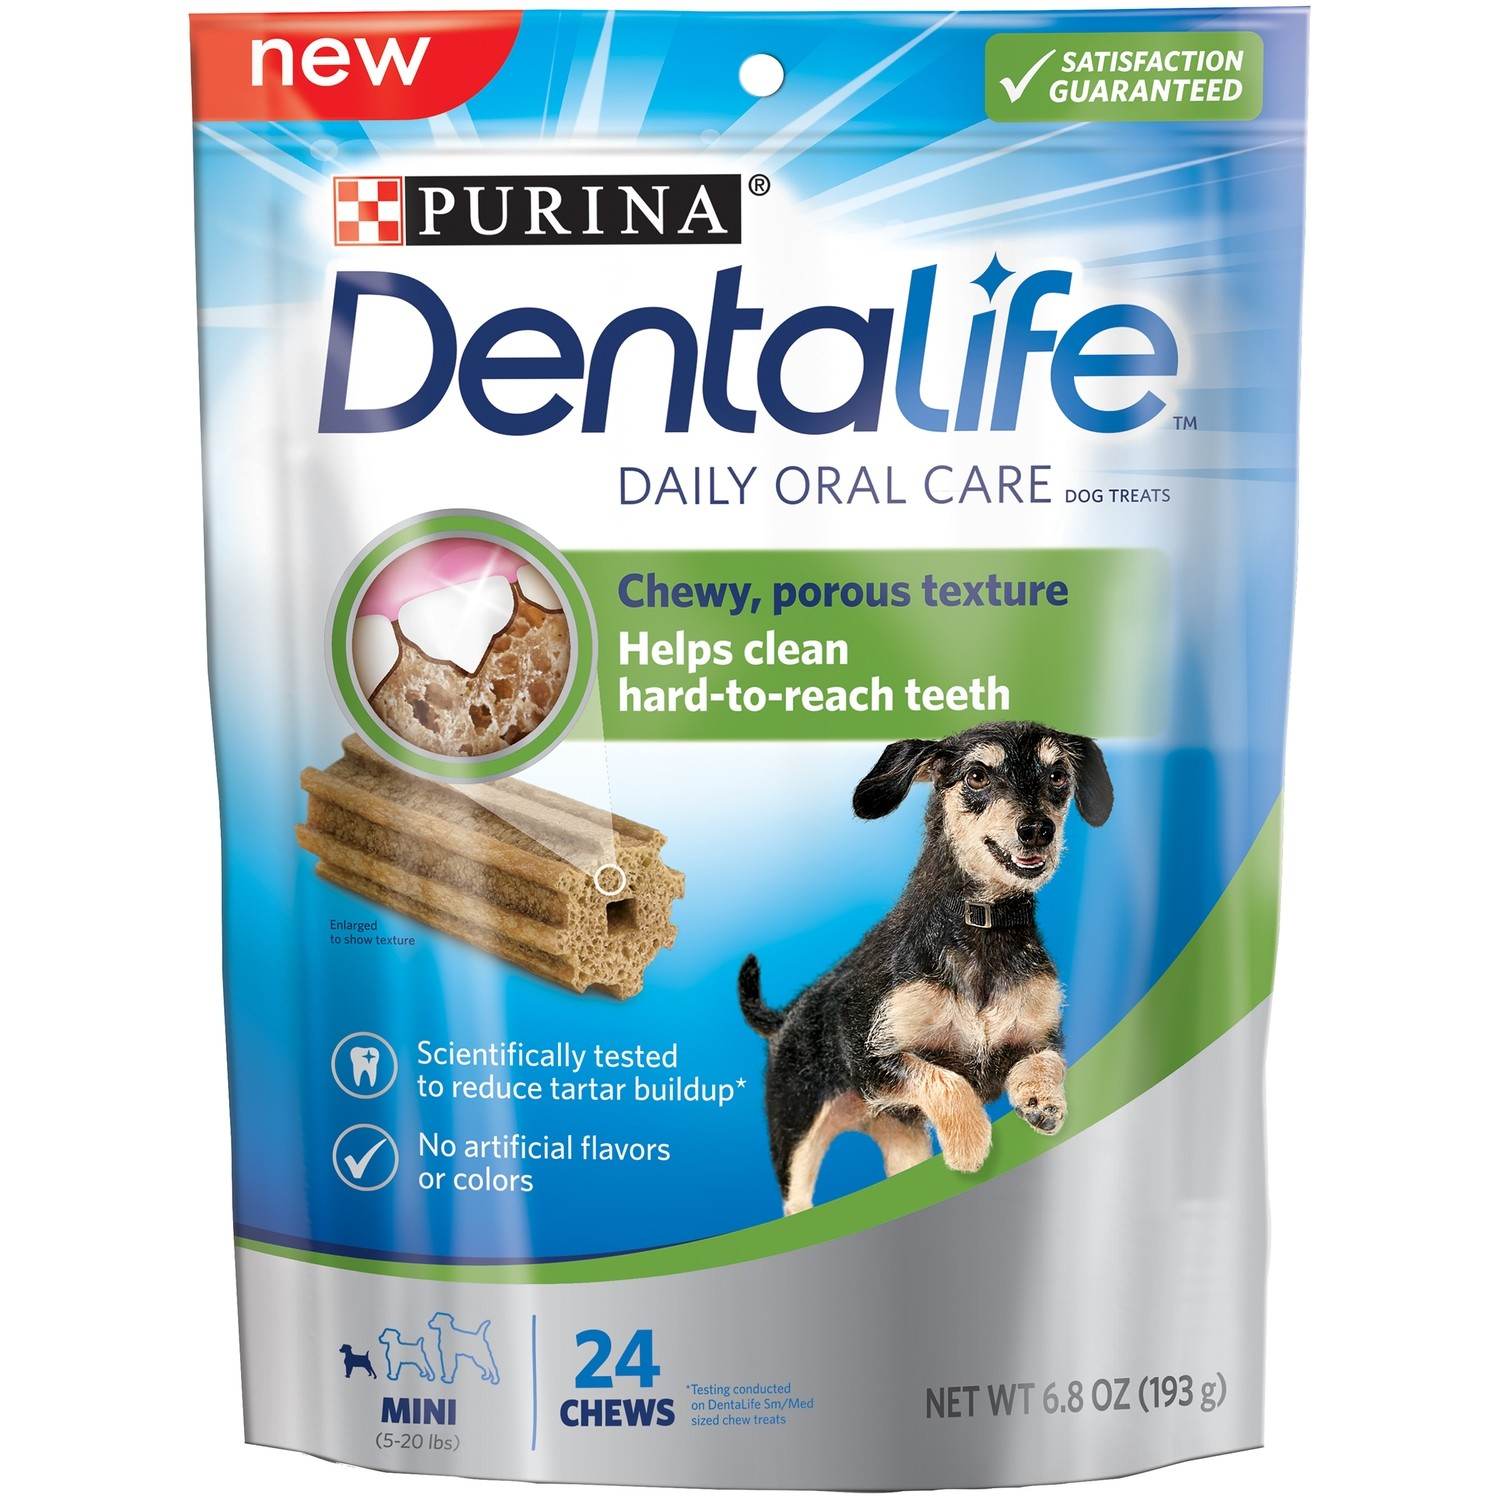 **SALE** Purina DentaLife Daily Oral Care Mini Dog Treats, 24 count, Small (6/18) (T.F9)